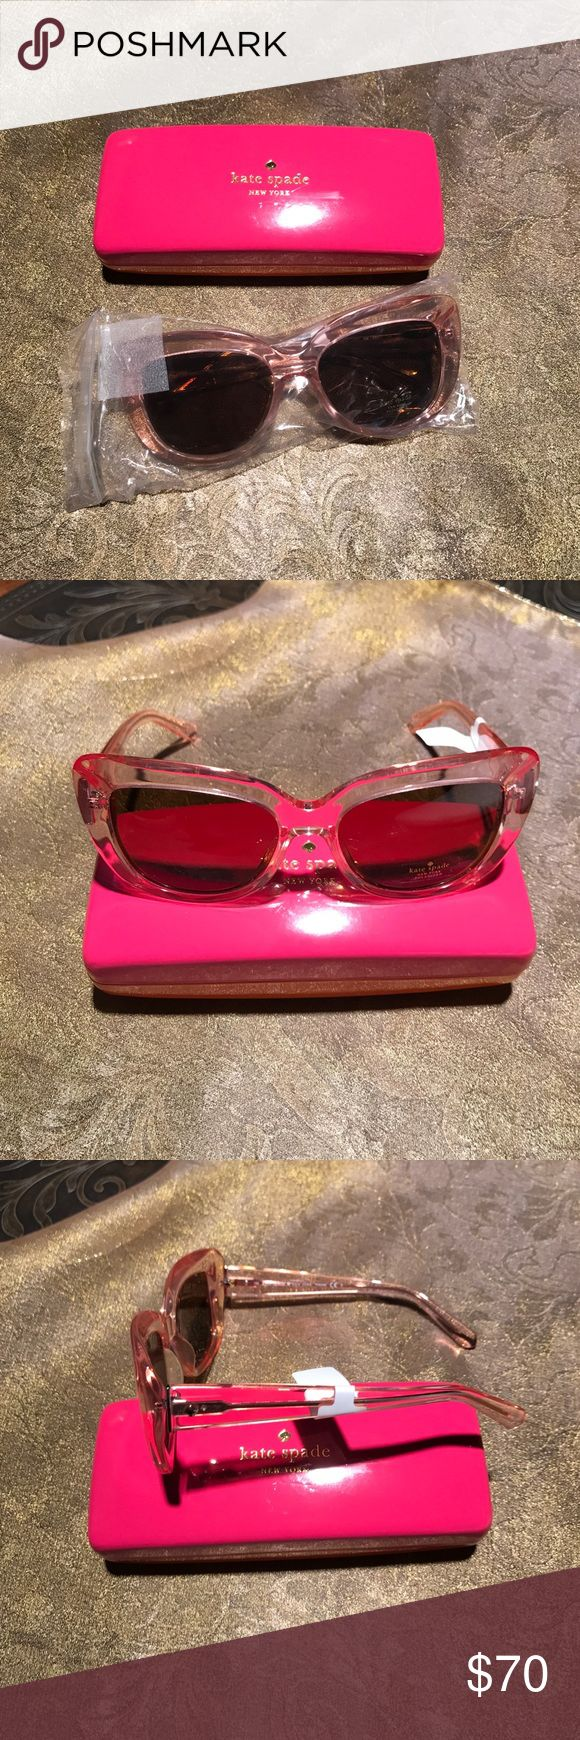 Kate Spade Sunglasses Kate Spade Cateye Sunglasses. New in original Box with Cleaning cloth   Never worn. Clear pink amber color frame. Thank you 😊 kate spade Accessories Sunglasses